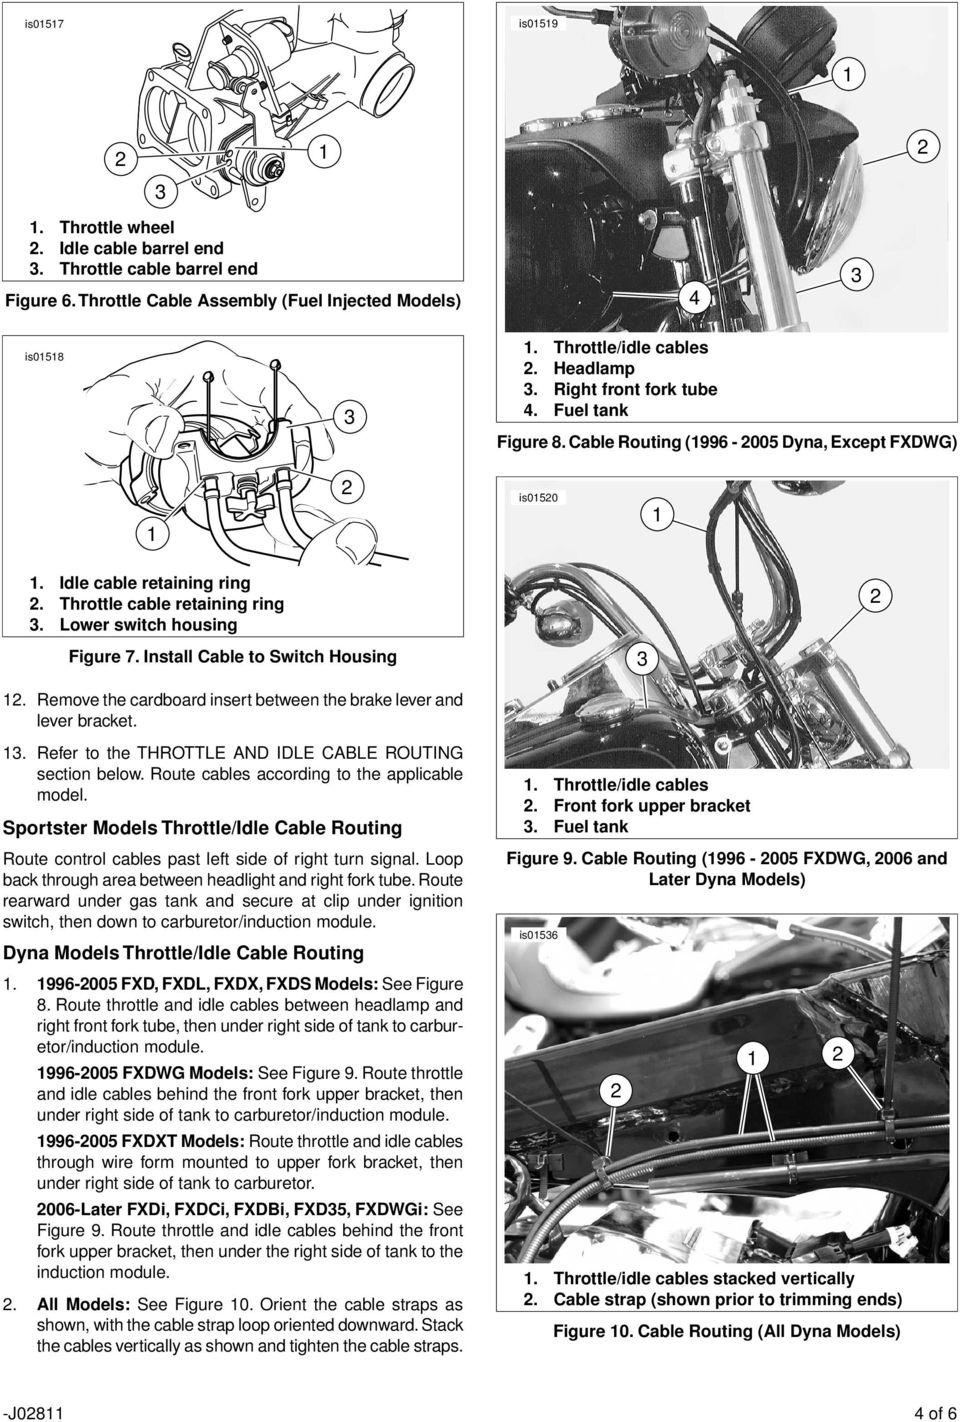 Remove the cardboard insert between the brake lever and lever bracket.. Refer to the THROTTLE AND IDLE CABLE ROUTING section below. Route cables according to the applicable model.